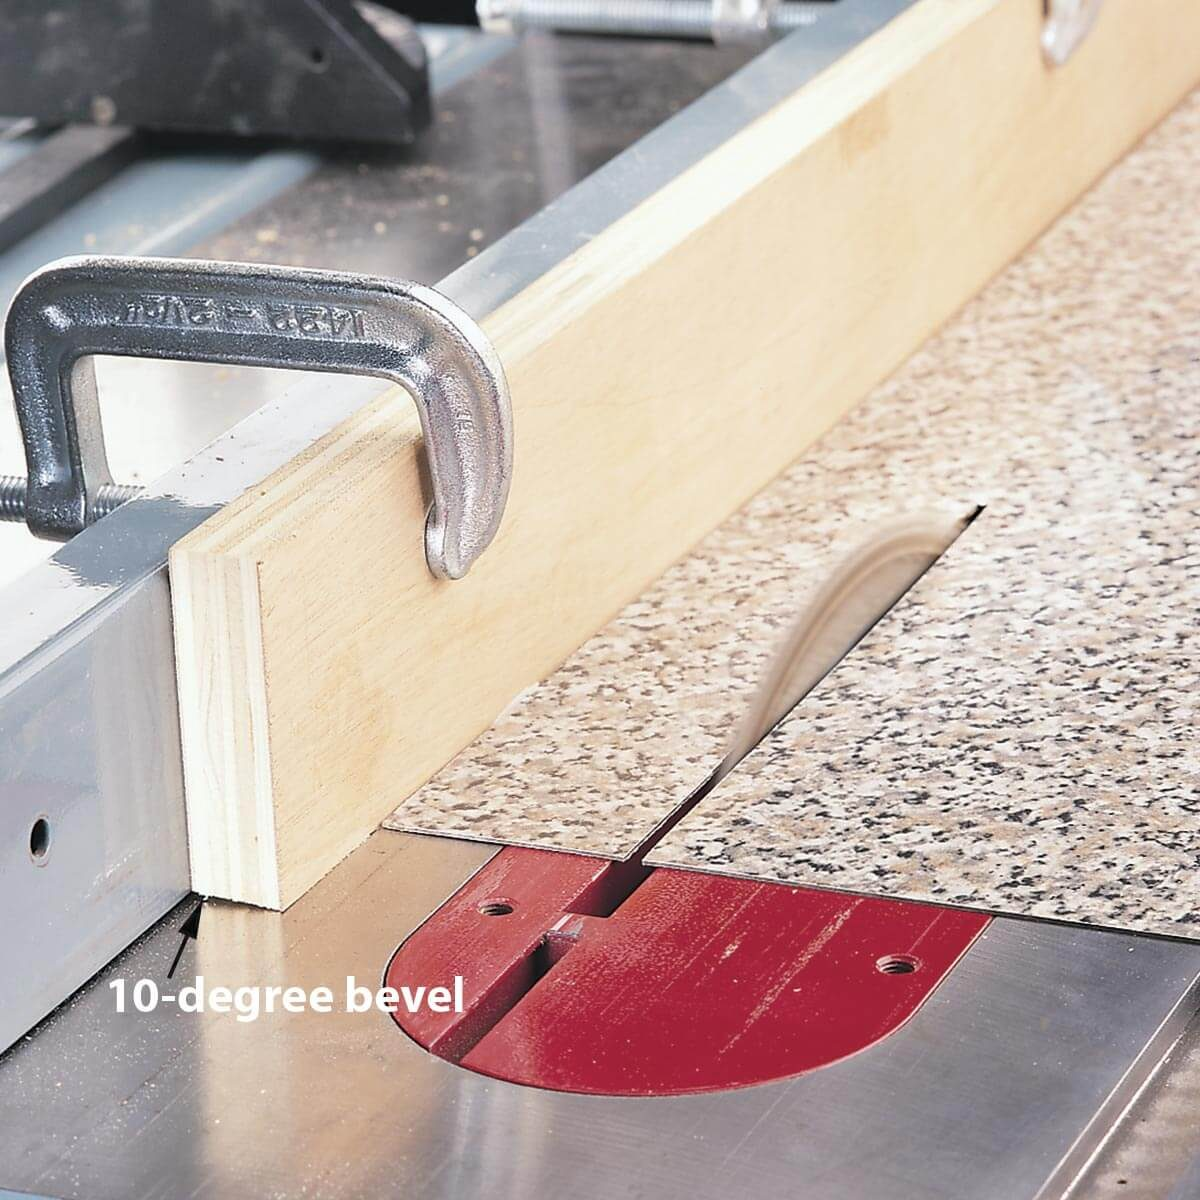 ripping laminate on a table saw